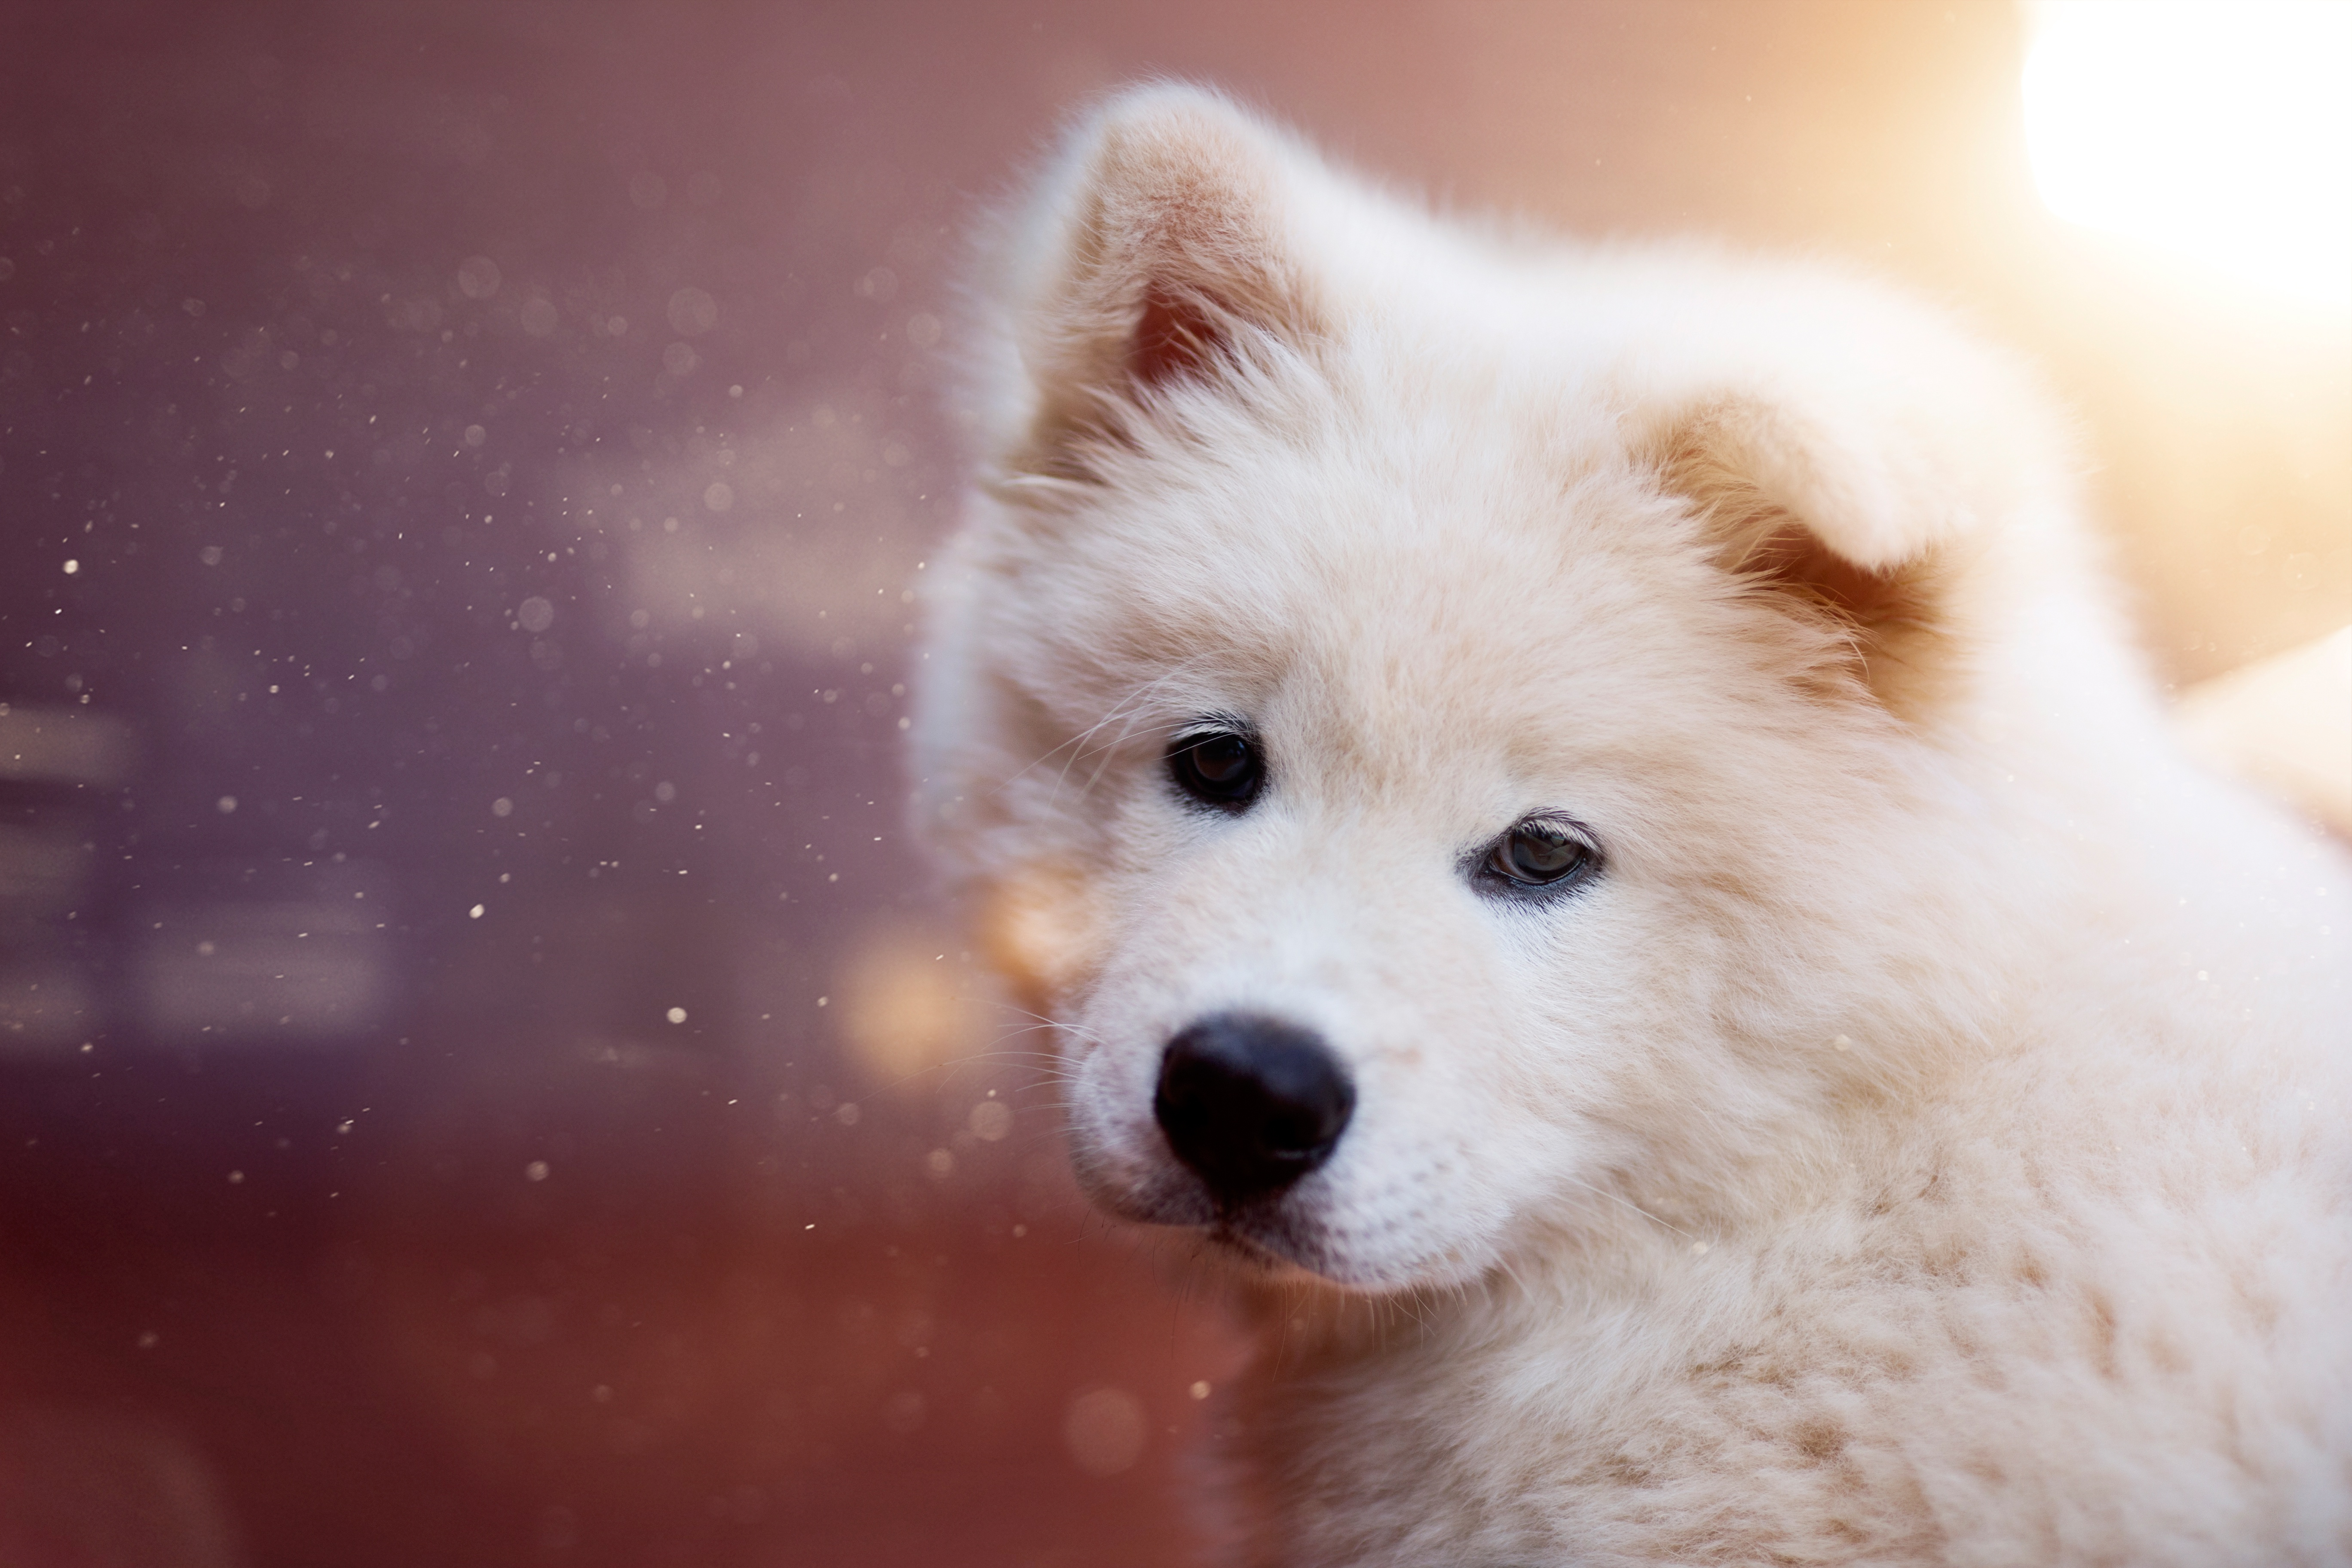 Fluffy And Cute Wallpapers Samoyed 5k Retina Ultra Hd Wallpaper Background Image